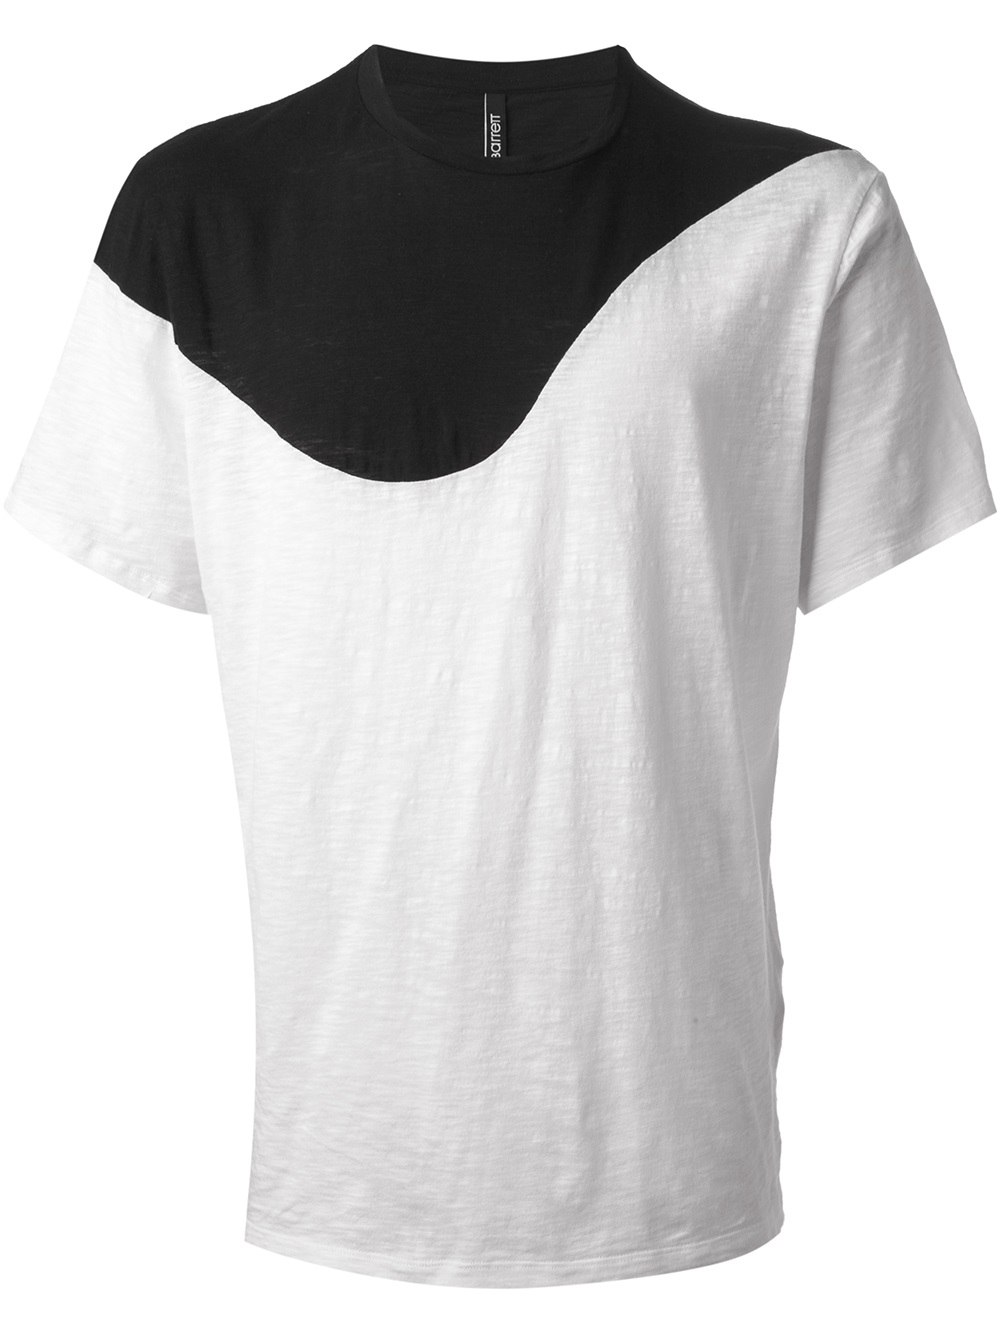 T shirt white colour - Gallery